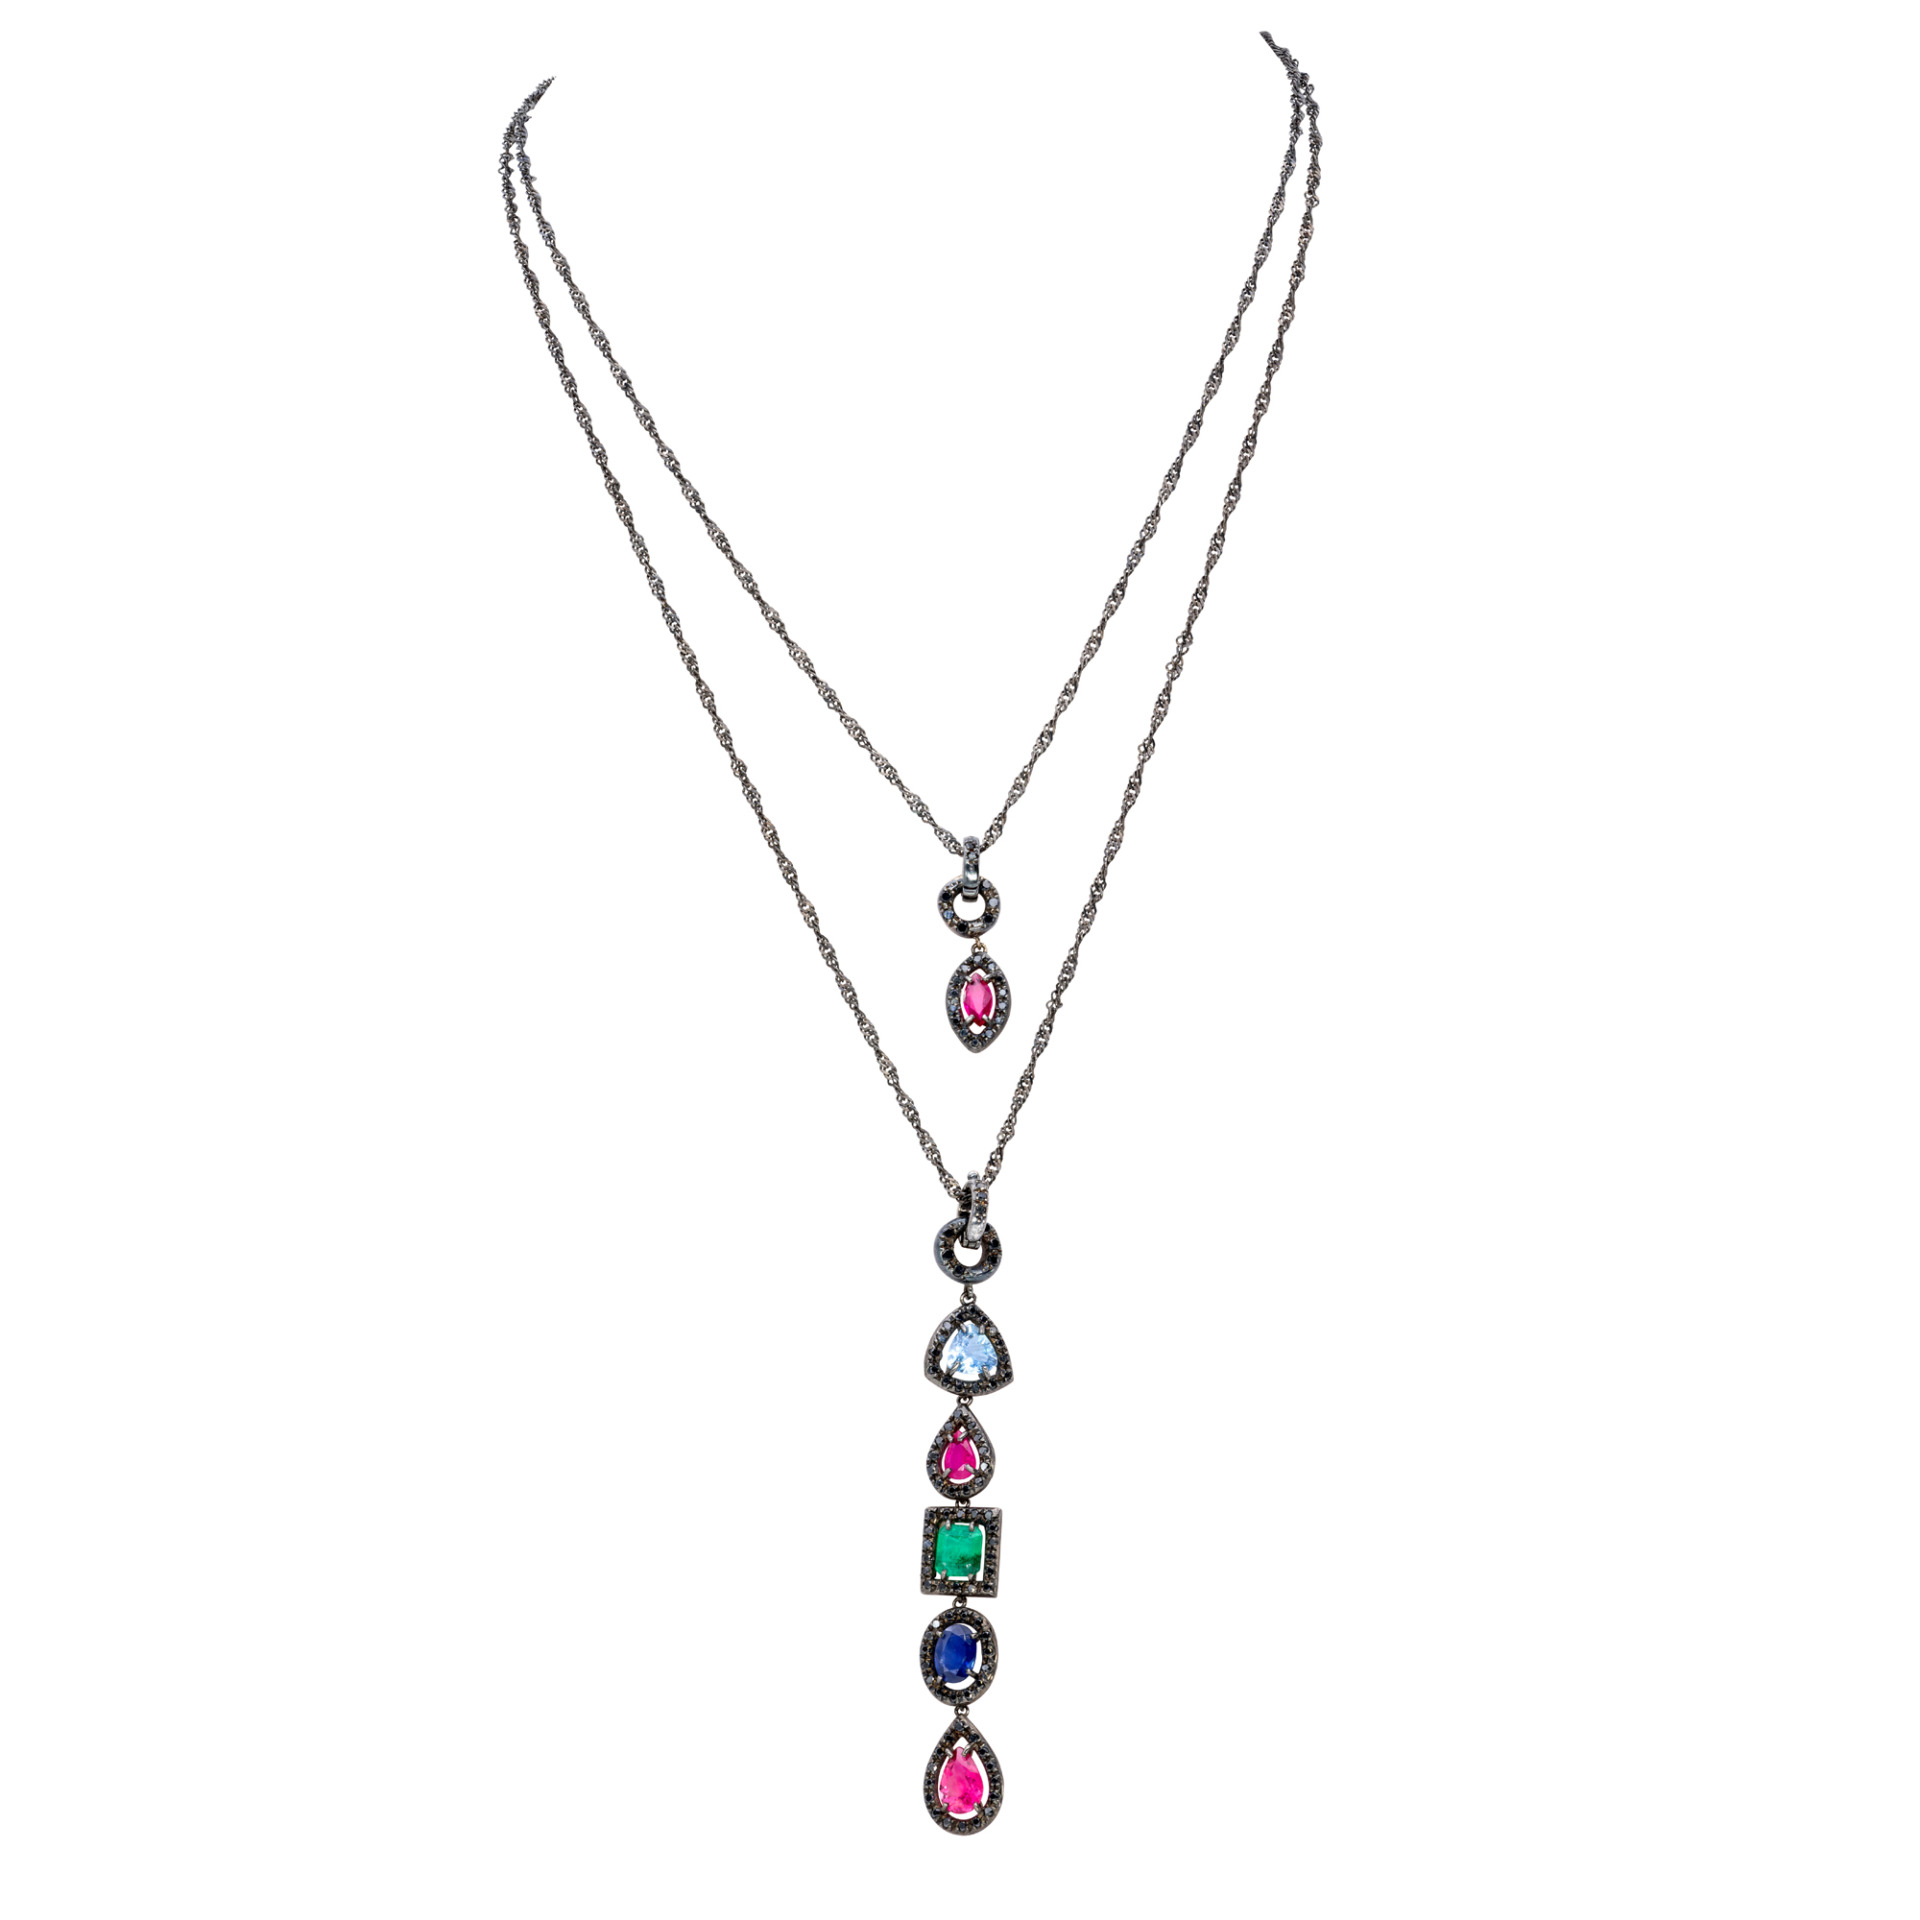 d'Avossa Pendants in Precious Stones and Black Diamonds